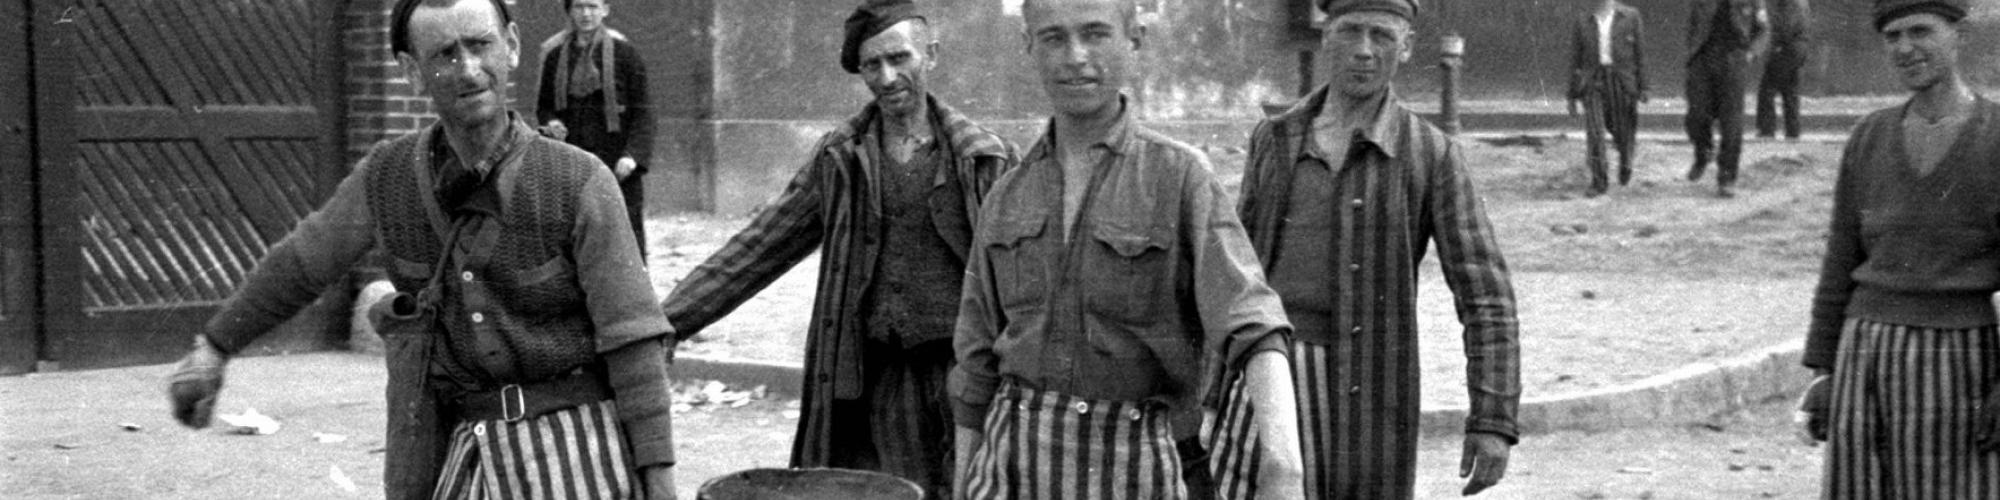 Photo Raphaël Algoet, Buchenwald avril 1945 © CegeSoma/Archives de l'Etat